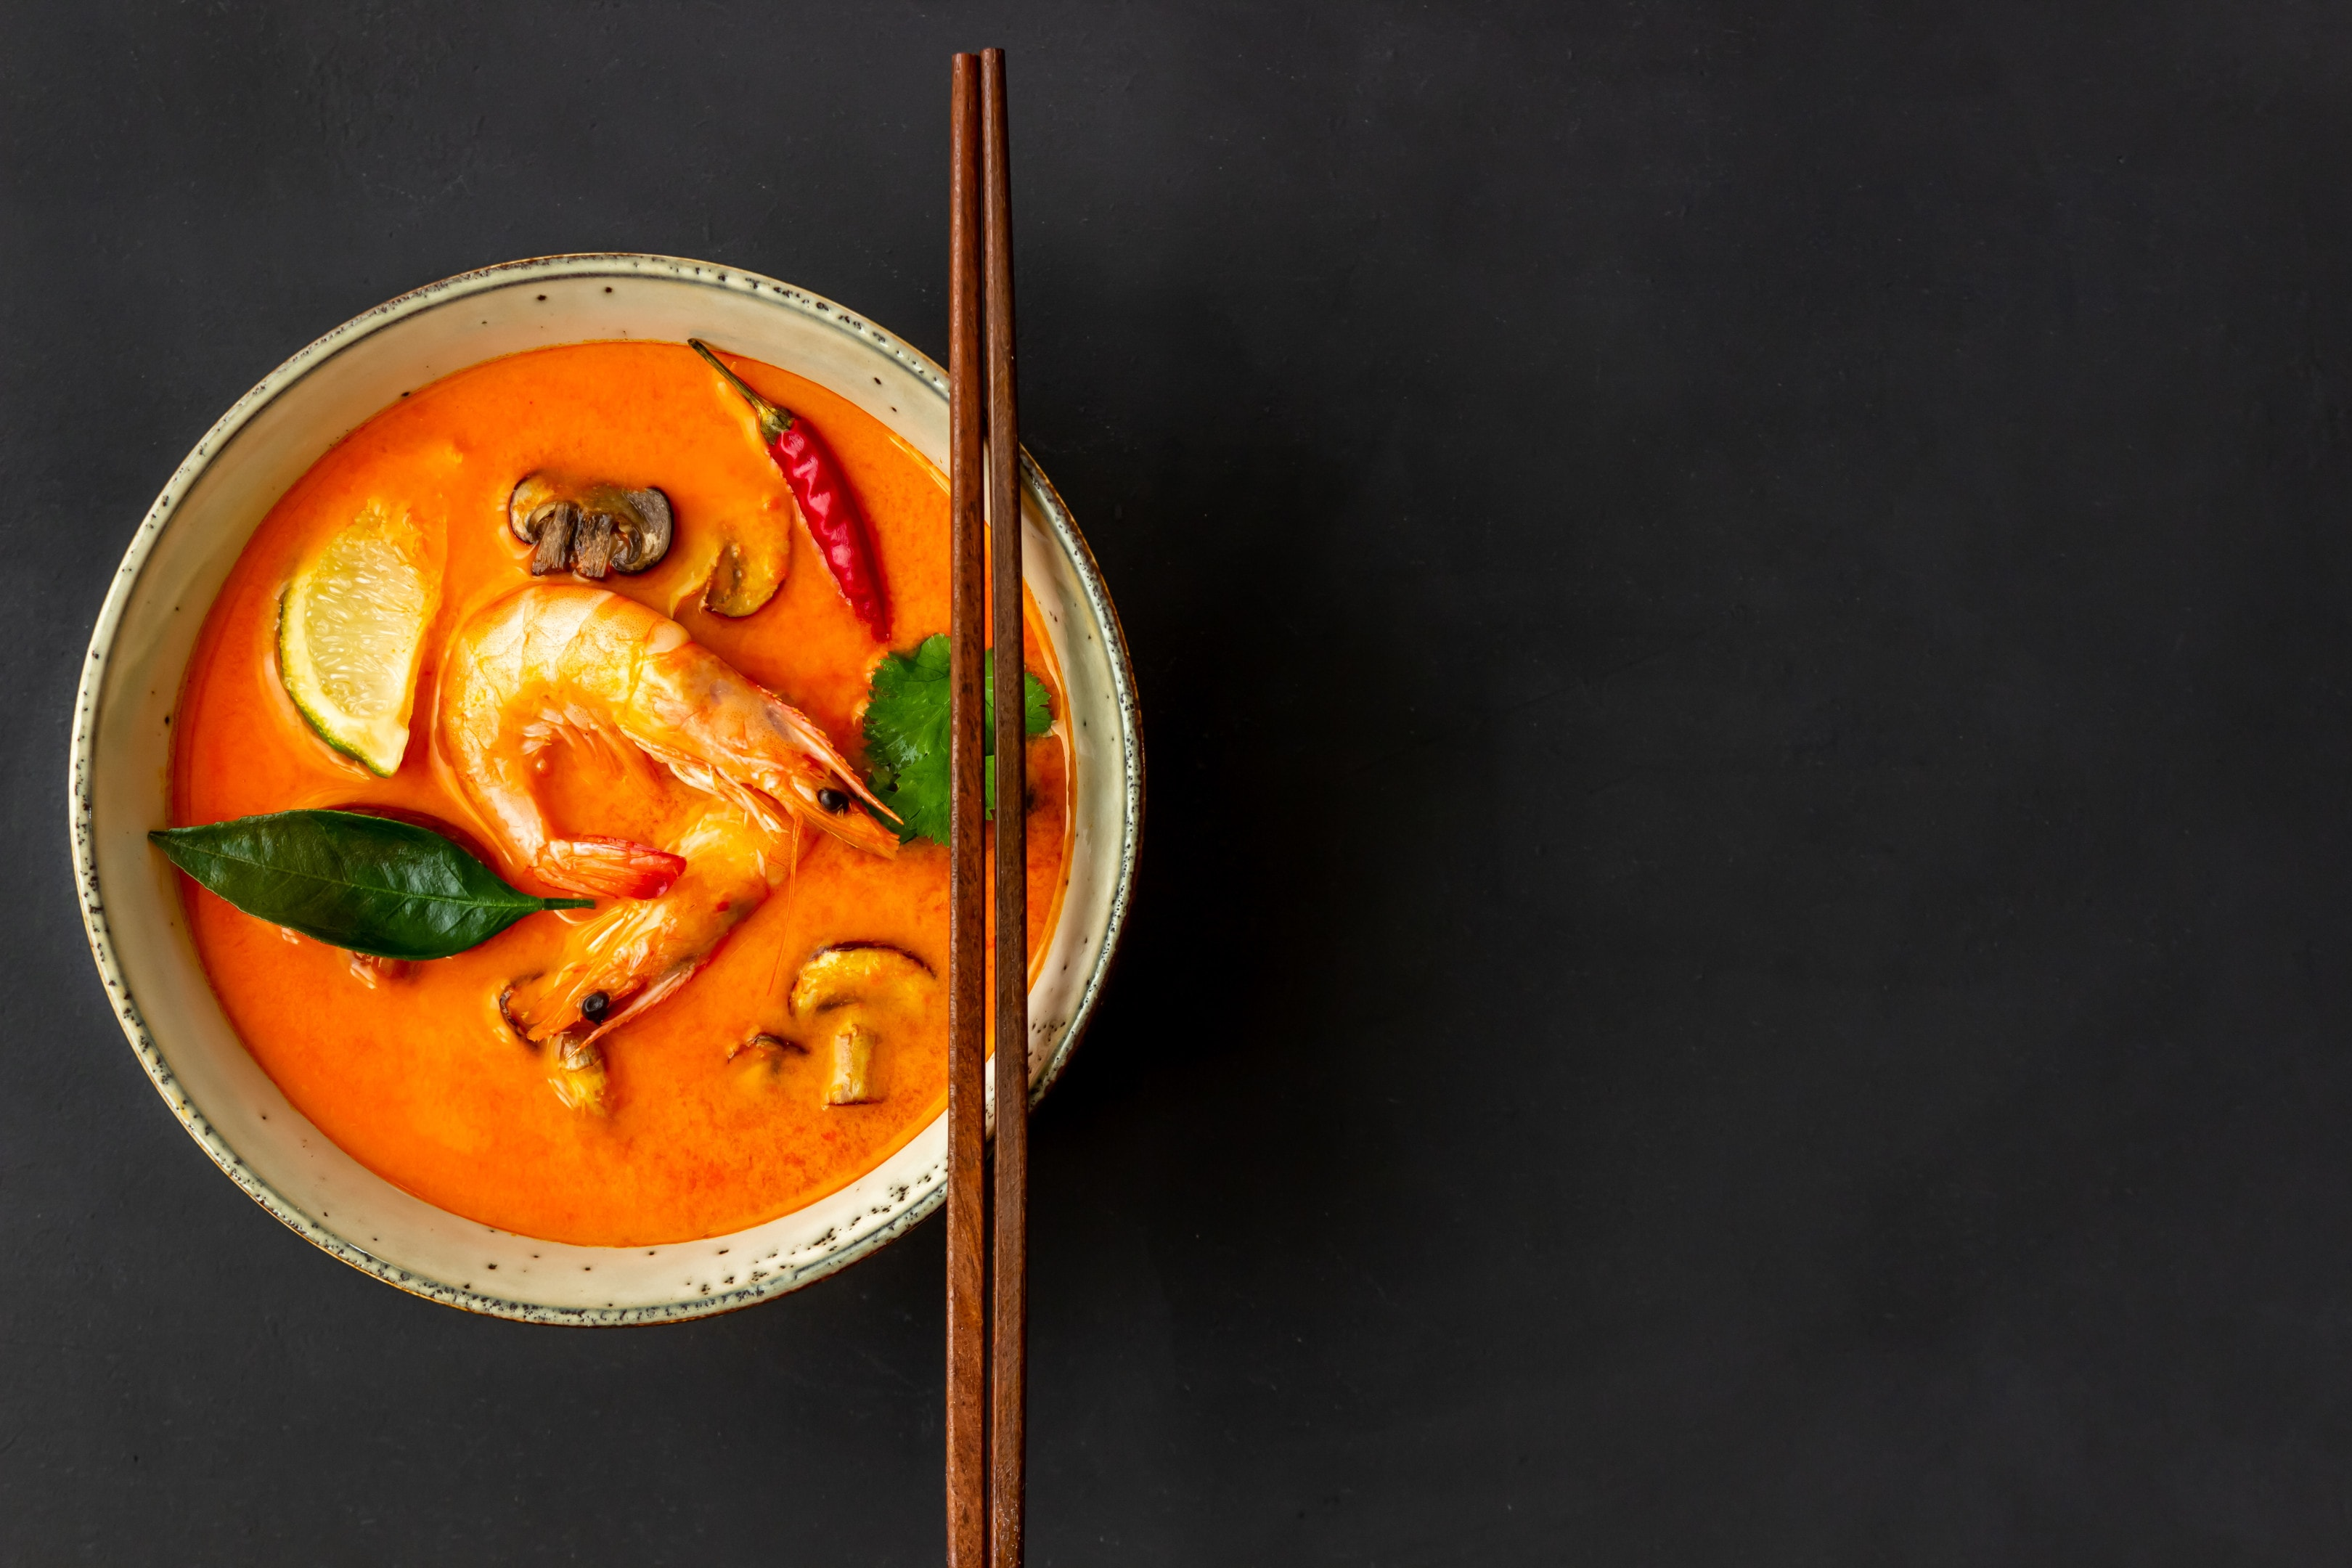 Tom yum goong Tom yum soup. Thai cuisine.